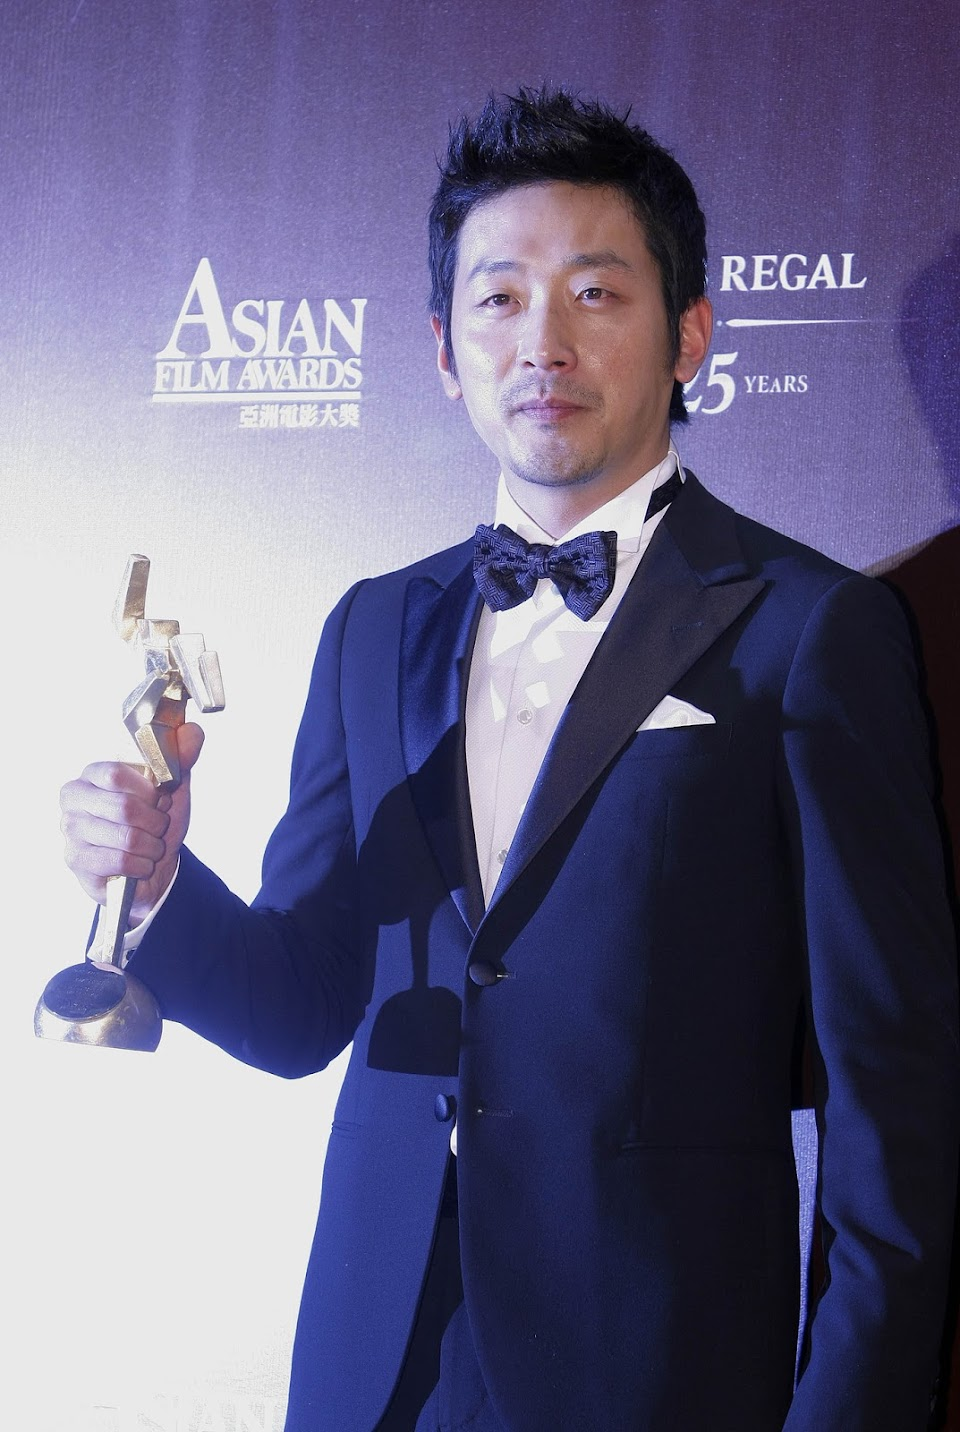 The 5th Asian Film Awards